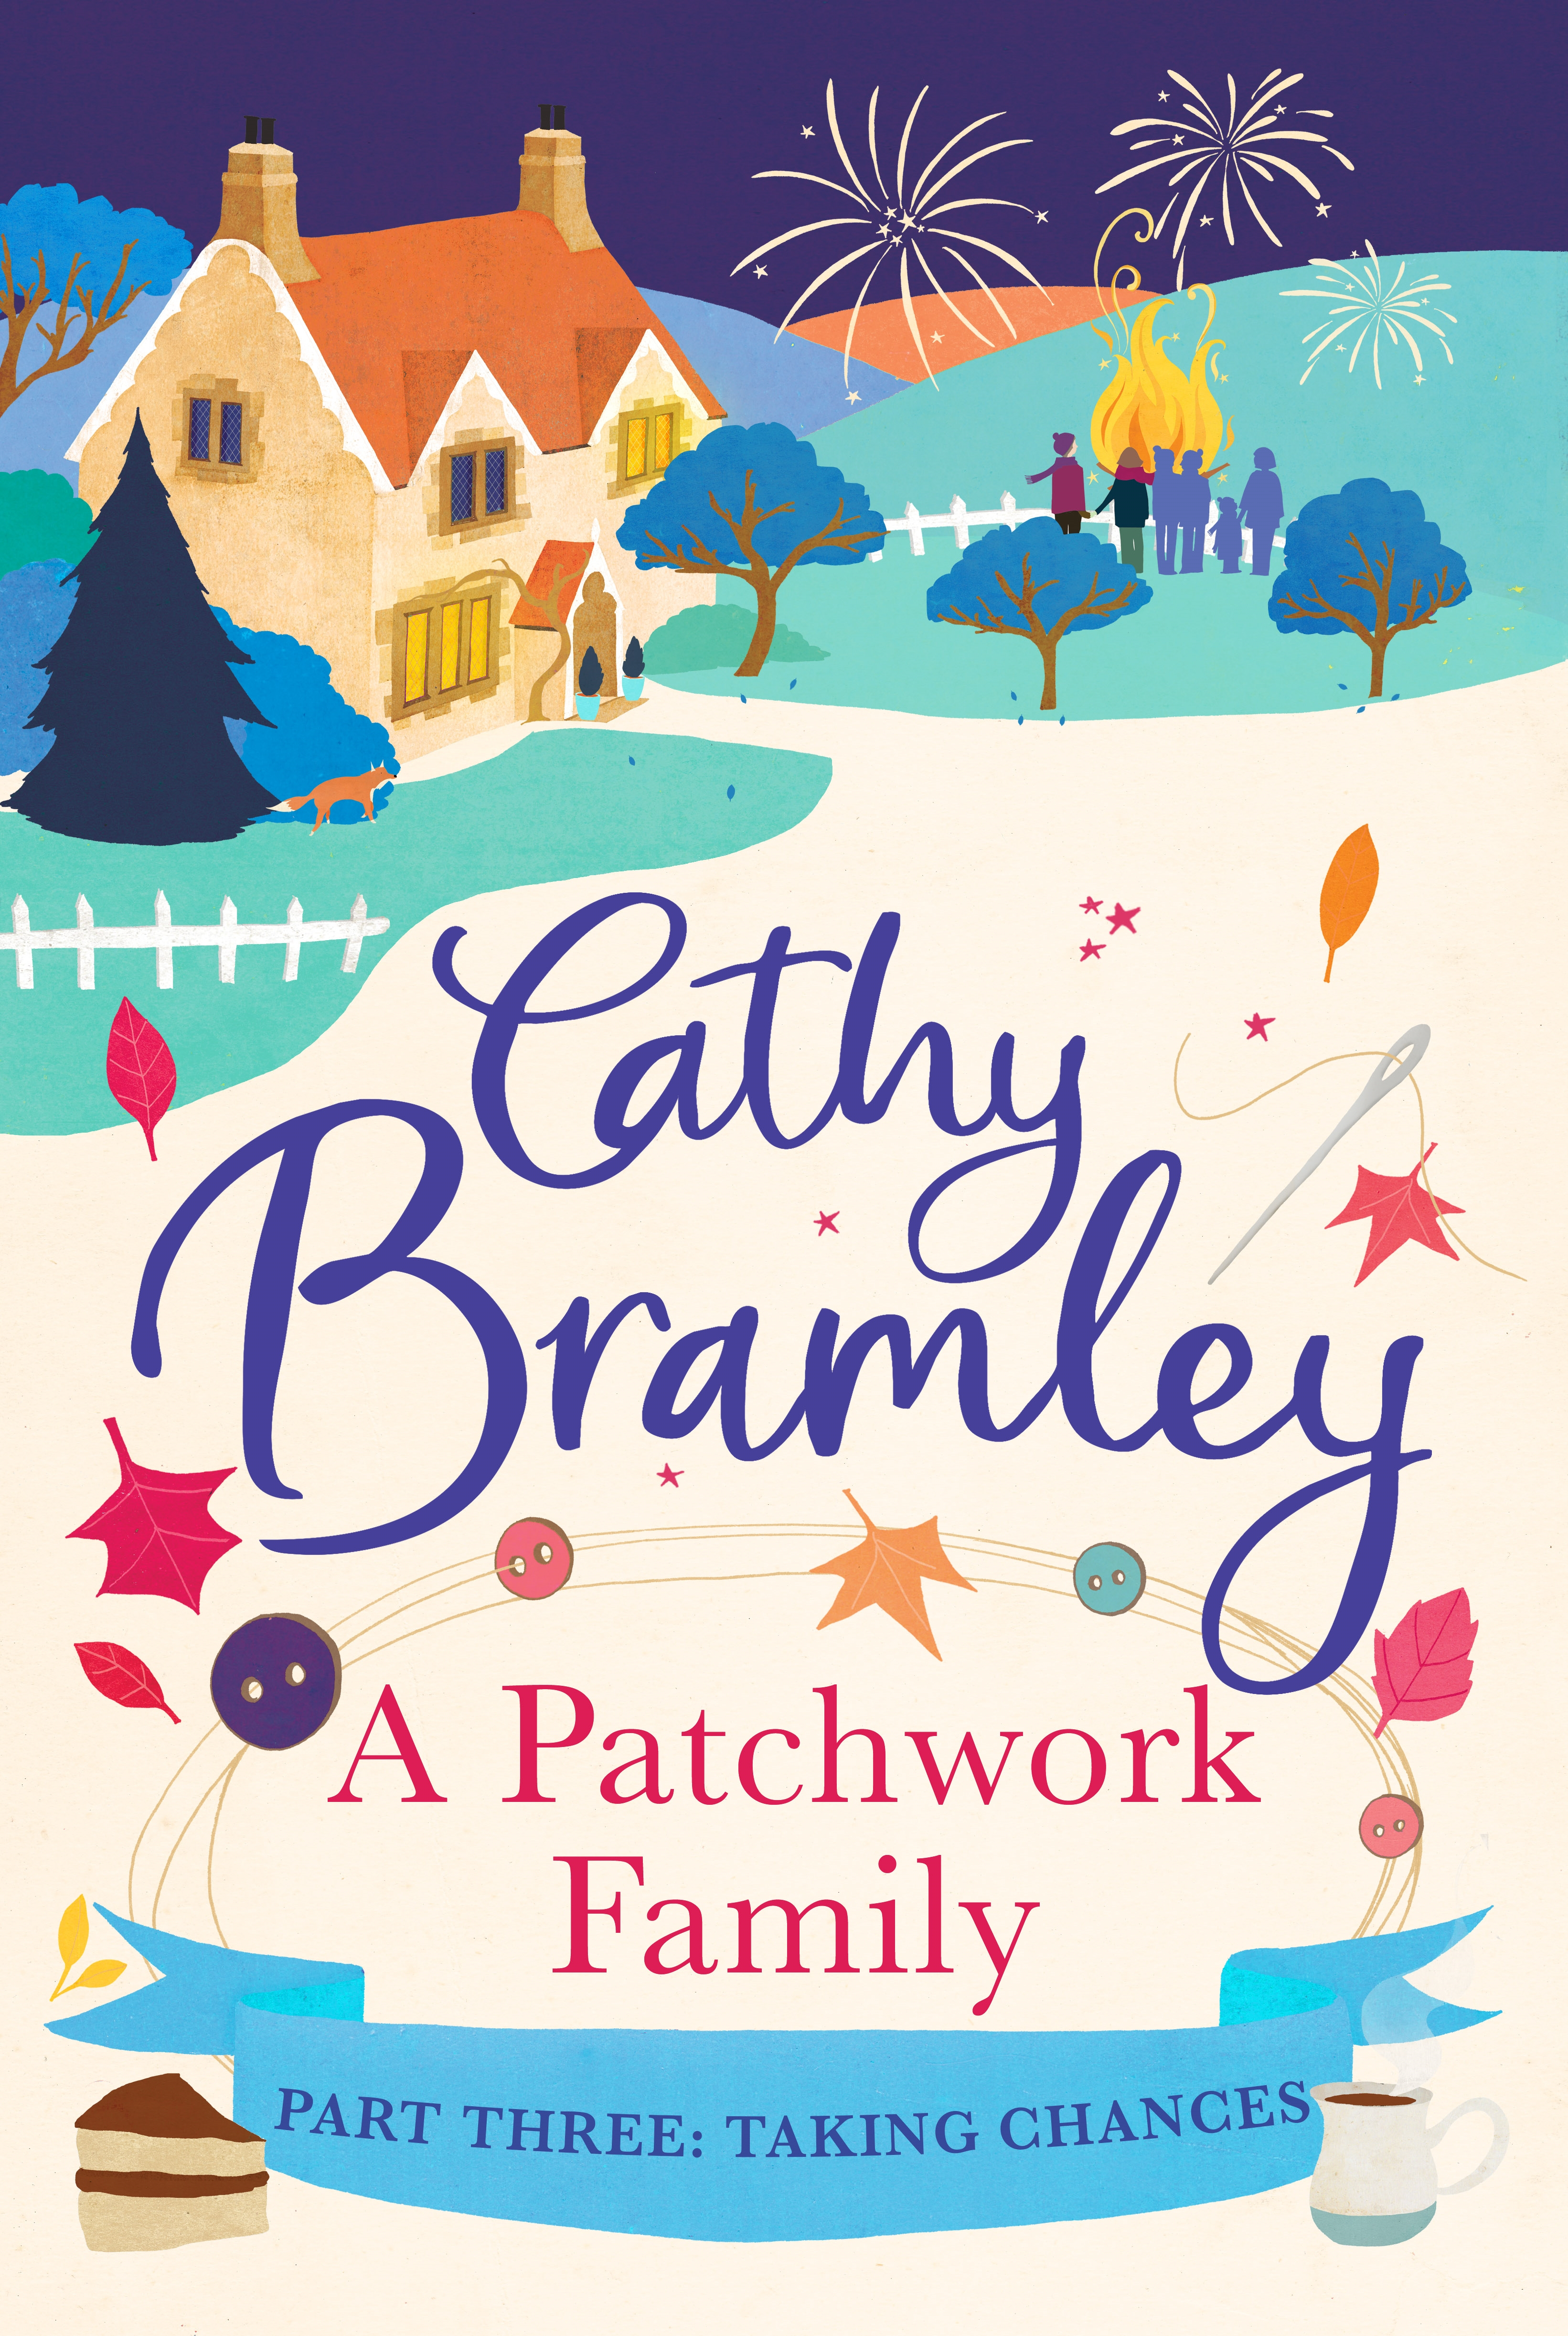 A Patchwork Family - Part Three